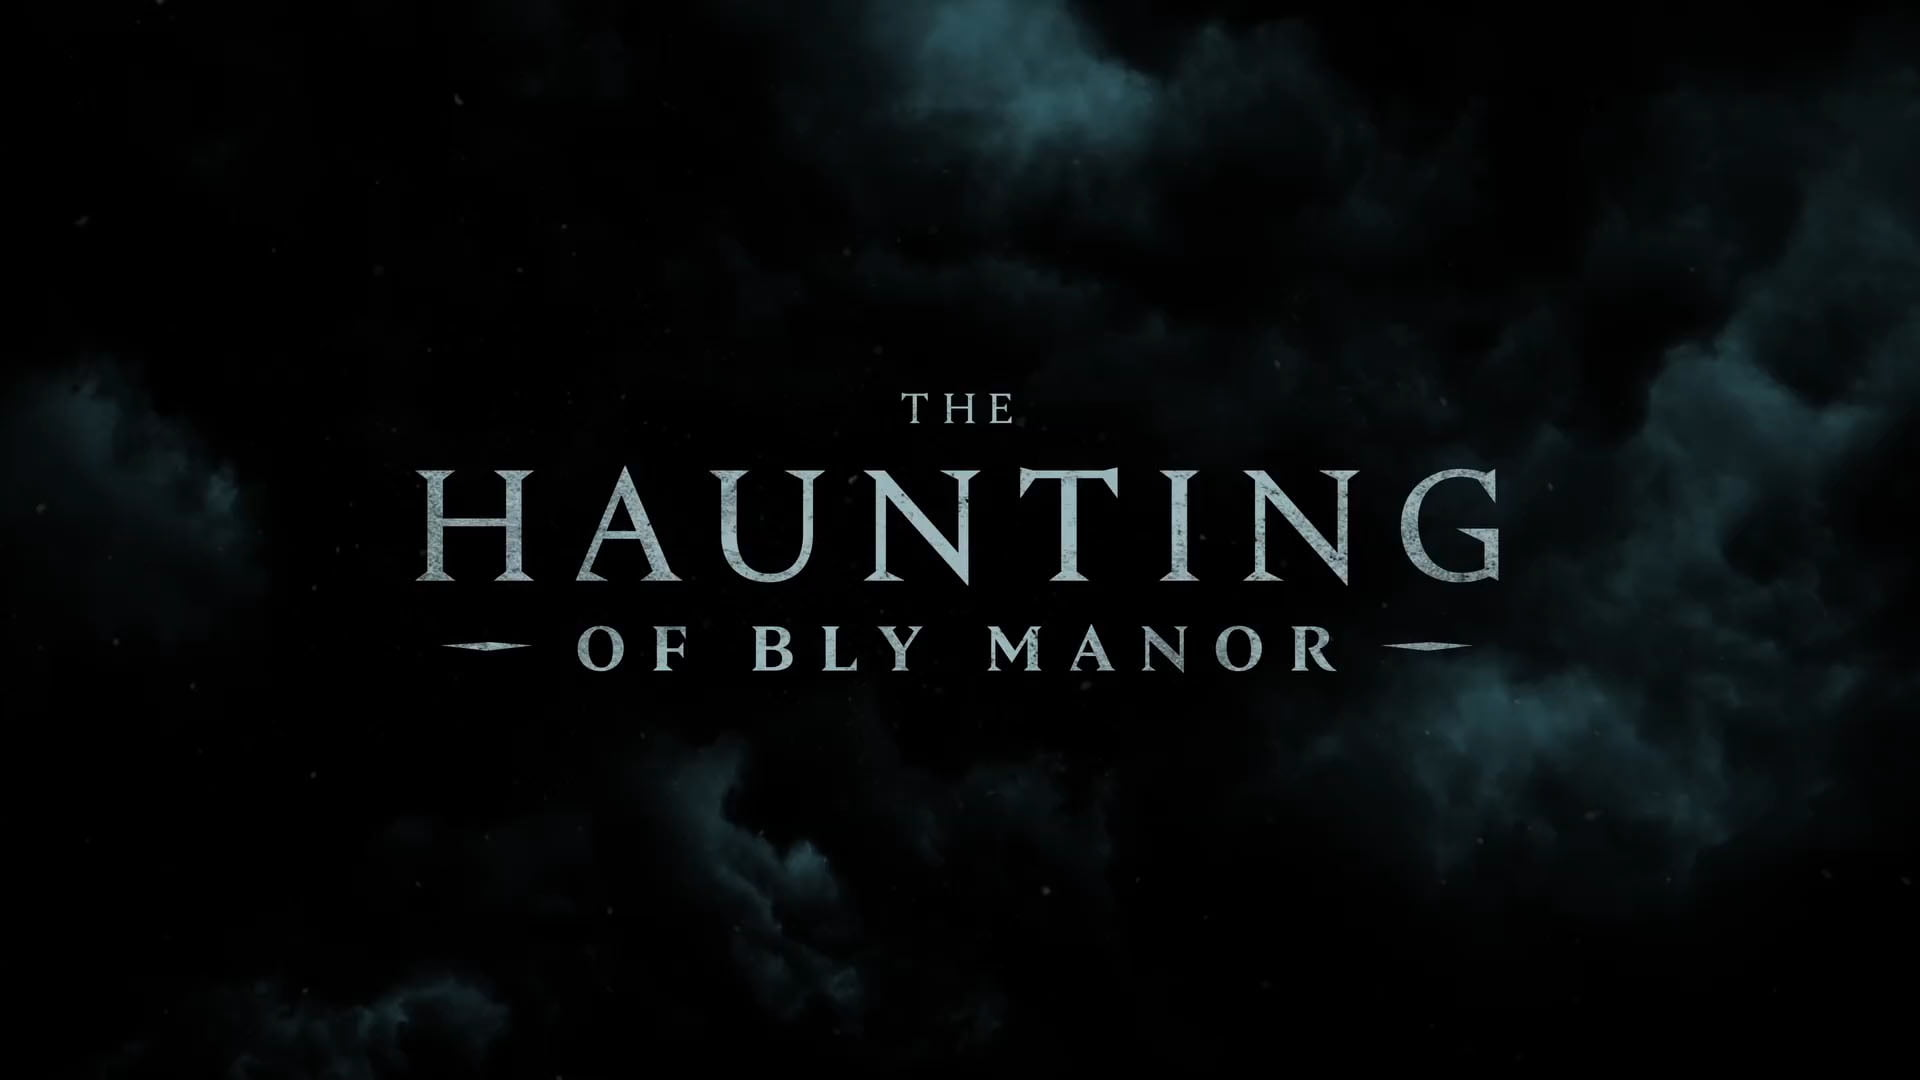 The Haunting of Bly Manor wallpaper